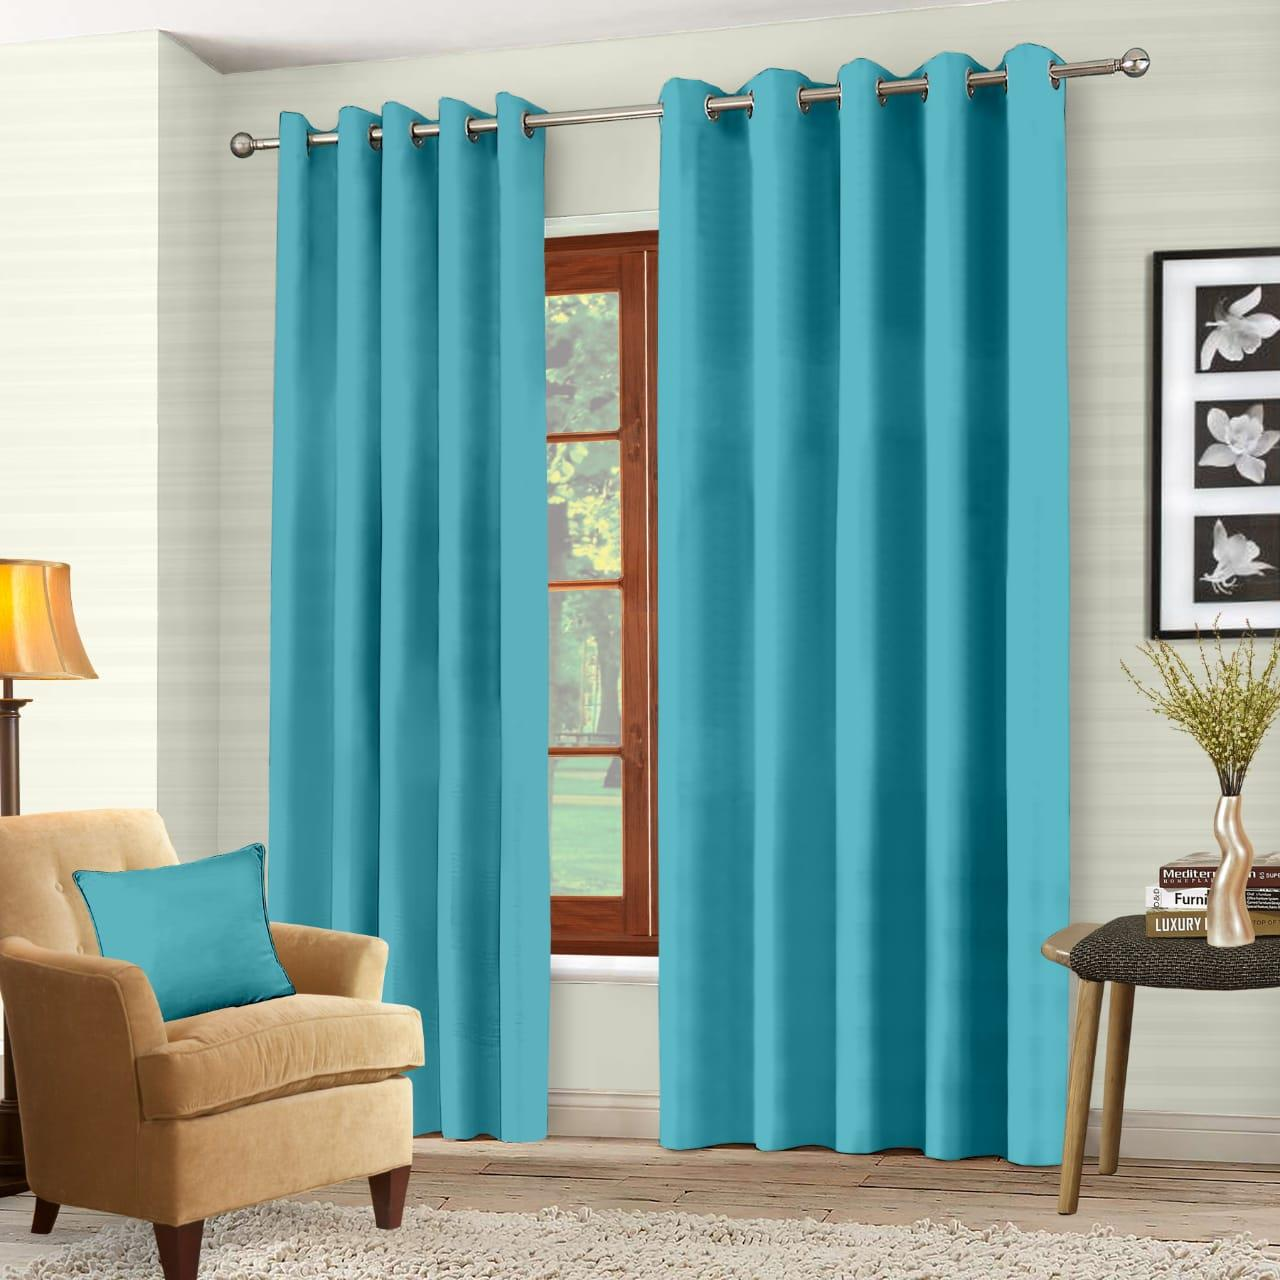 Luxury-Thermal-Blackout-Eyelet-Ring-Top-Curtains-Pair-with-tie-backs thumbnail 56